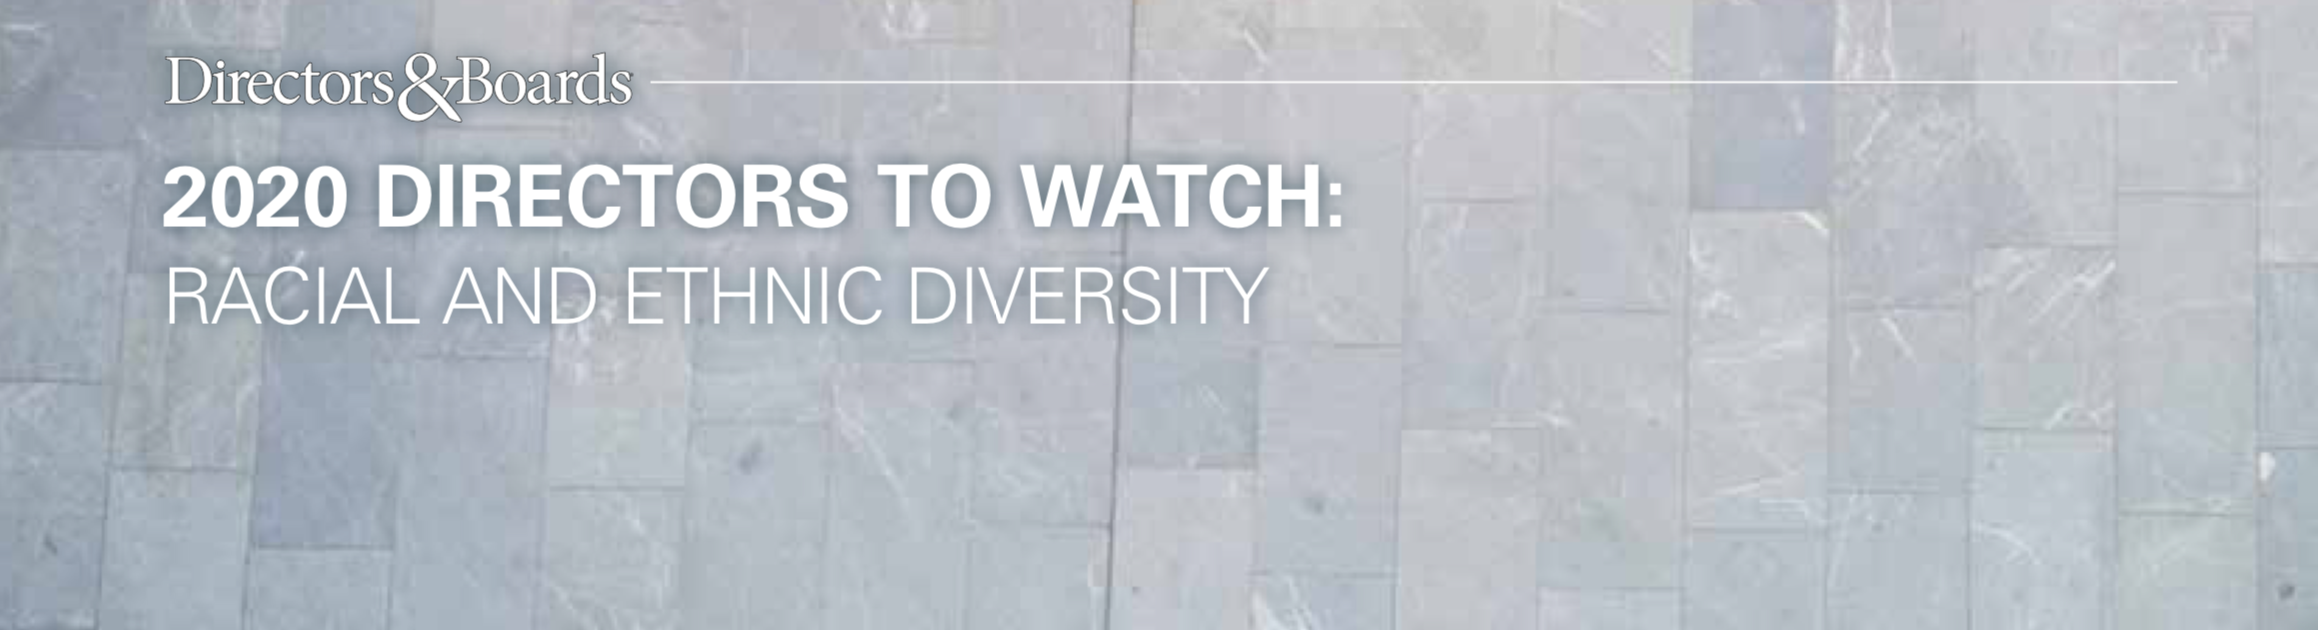 Directors&Boards 2020 Directors to Watch: Racial and Ethnic Diversity